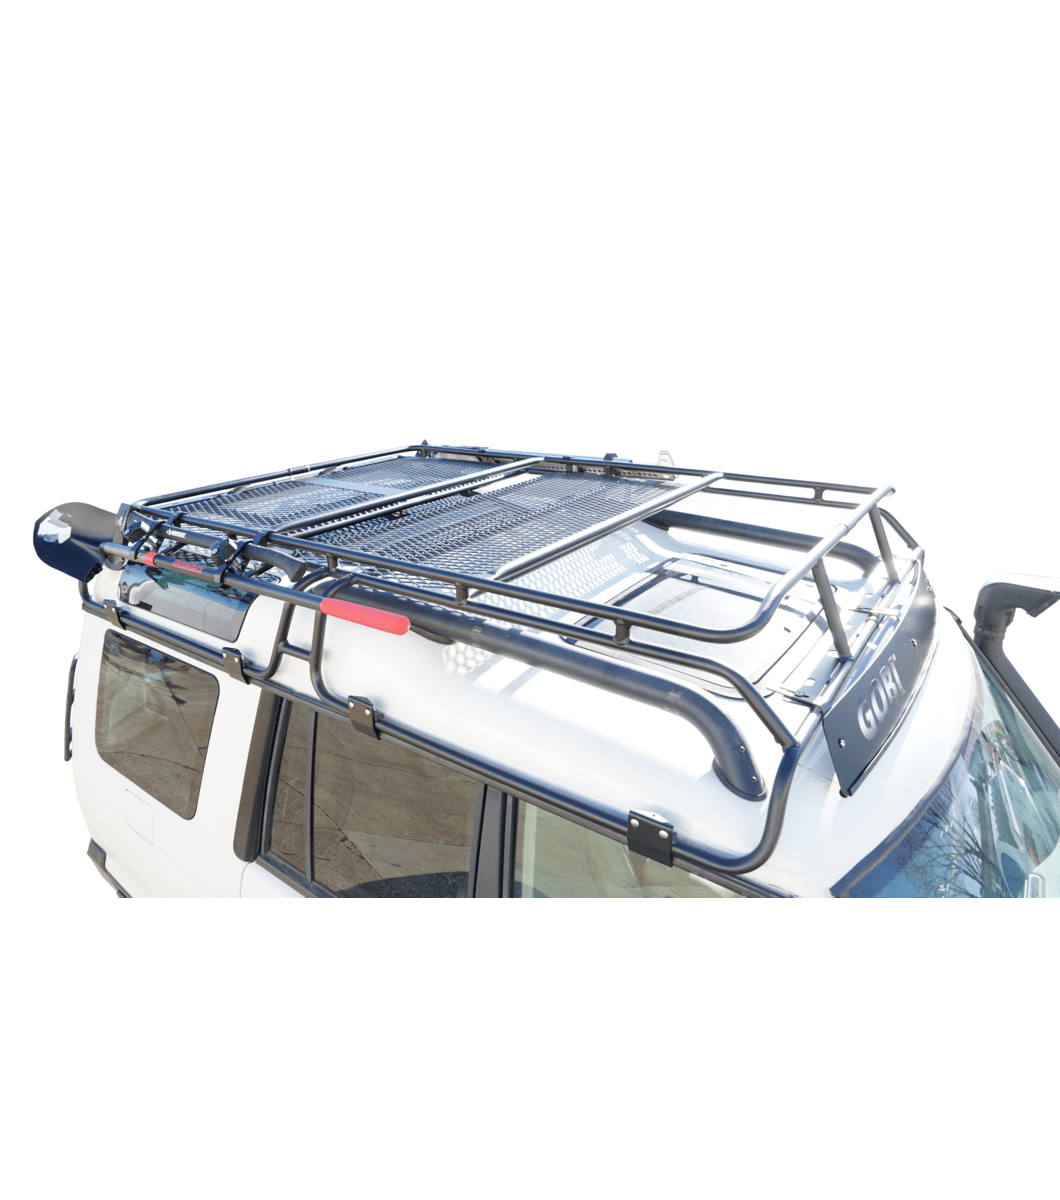 land rover discovery ii ranger rack multi light setup with sunroof